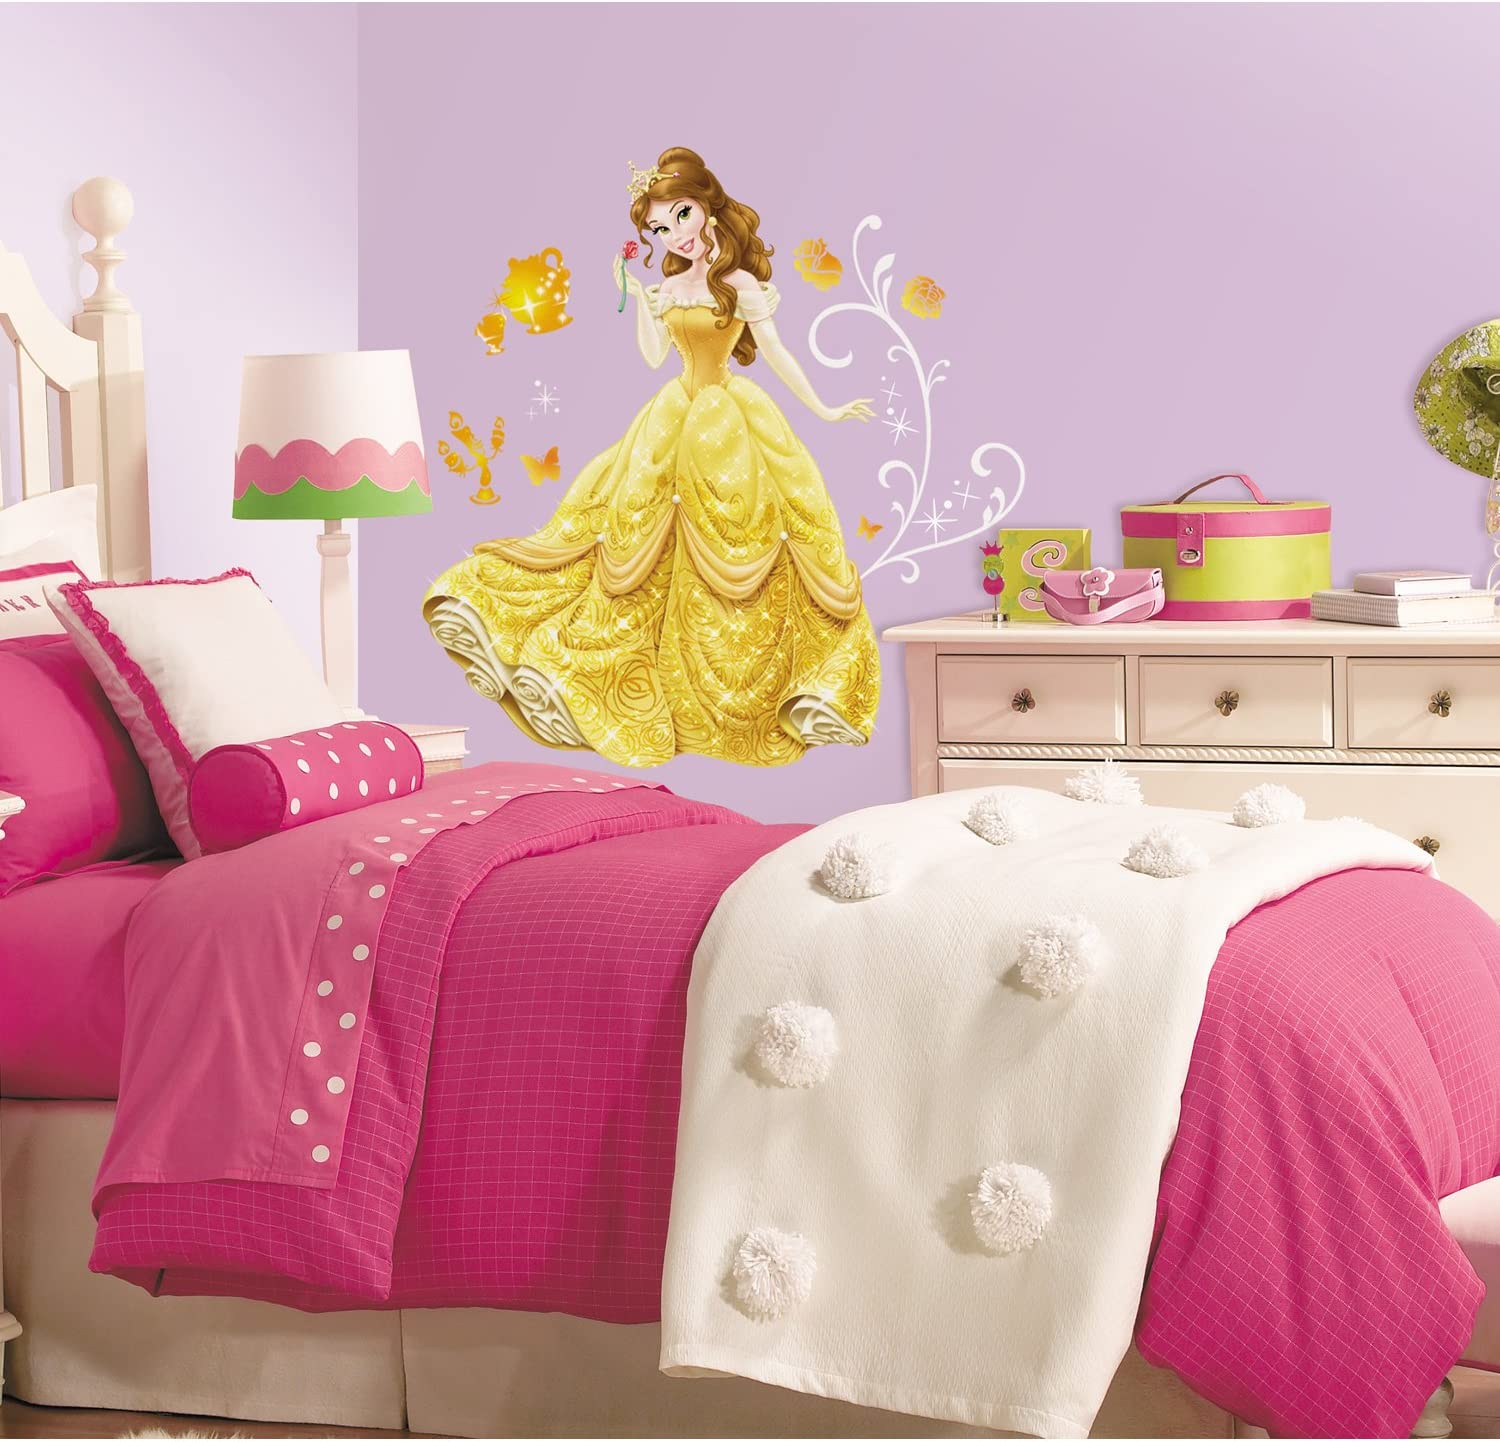 RoomMates Disney Princess - Belle Peel And Stick Giant Wall Decals